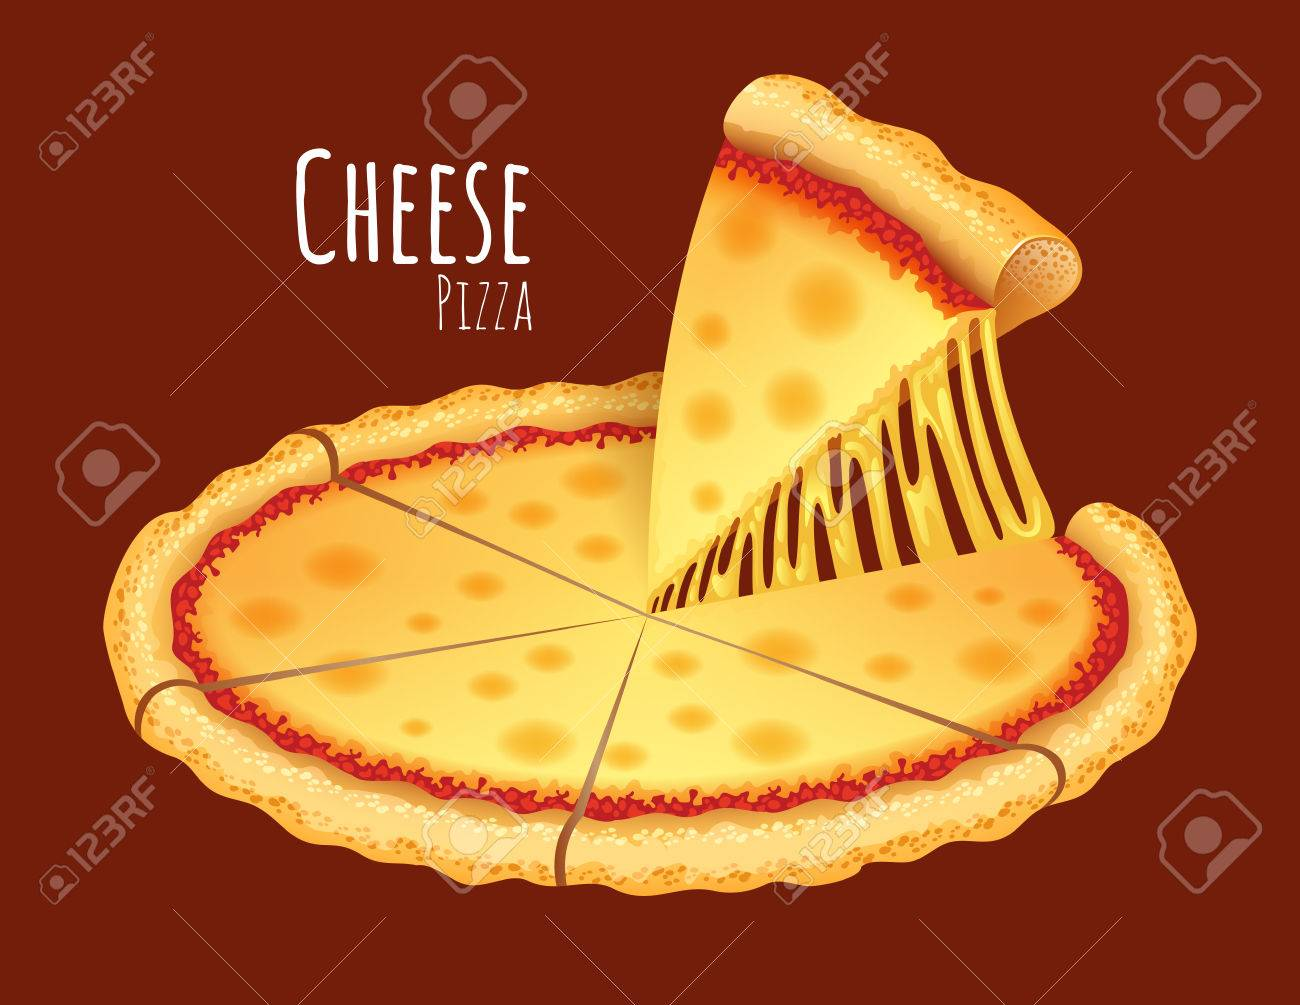 A vector illustration of a cooked Cheese Pizza.